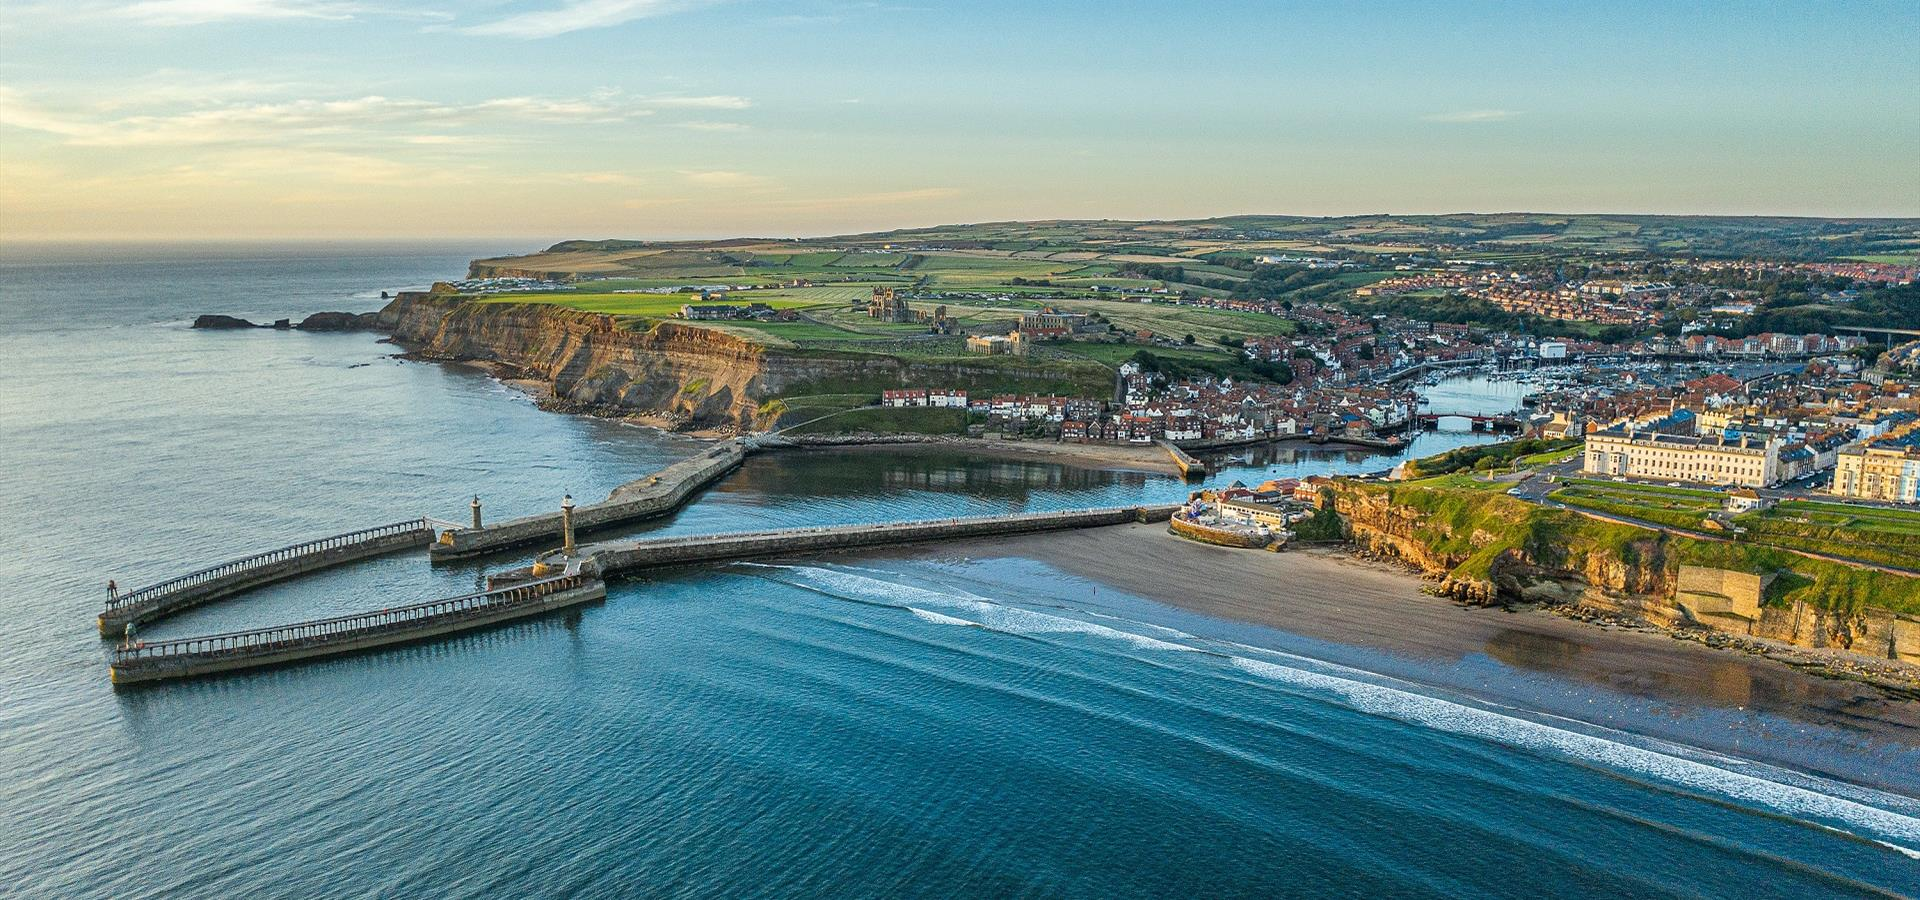 An image of Panoramic View of Whitby by Charlotte Graham